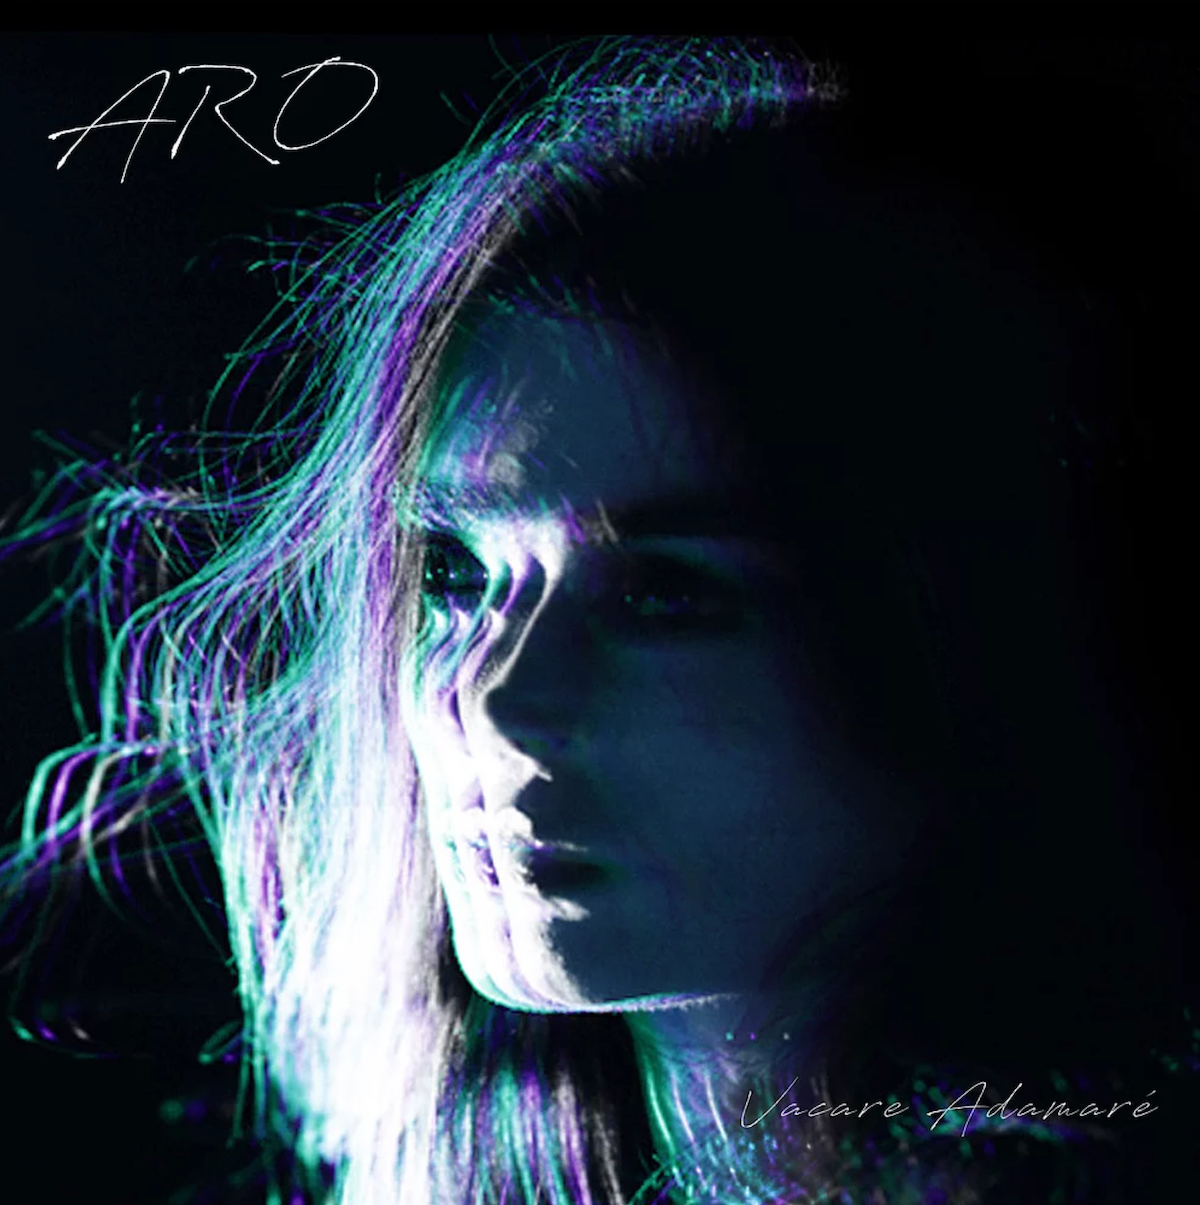 aro aimee osbourne vacare adamare album cover artwork stream track by track interview